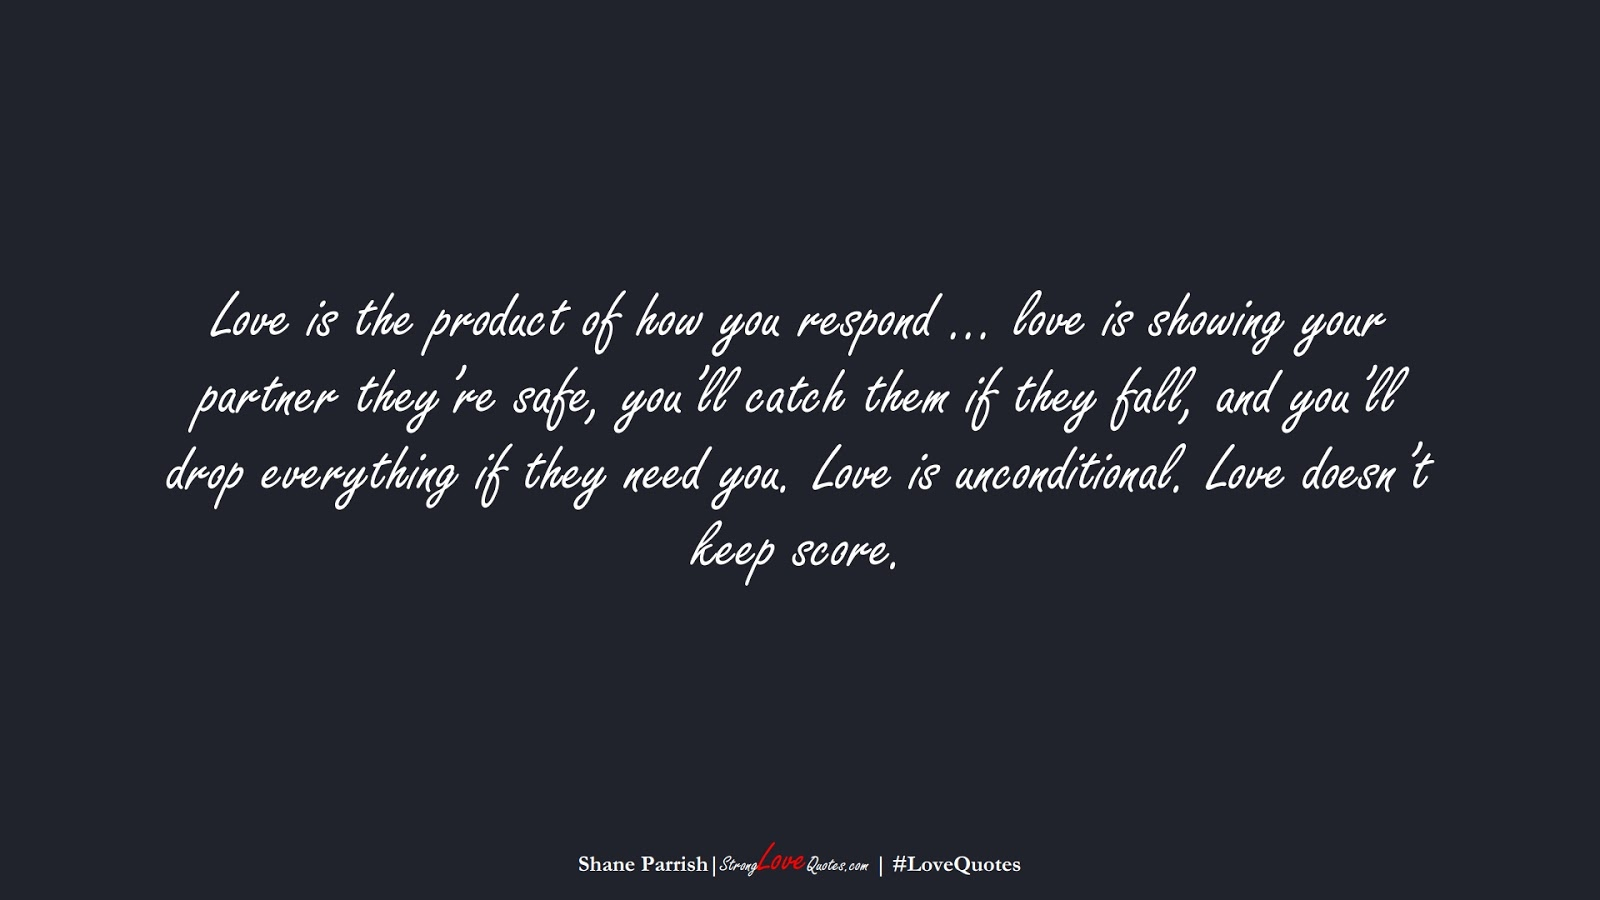 Love is the product of how you respond … love is showing your partner they're safe, you'll catch them if they fall, and you'll drop everything if they need you. Love is unconditional. Love doesn't keep score. (Shane Parrish);  #LoveQuotes